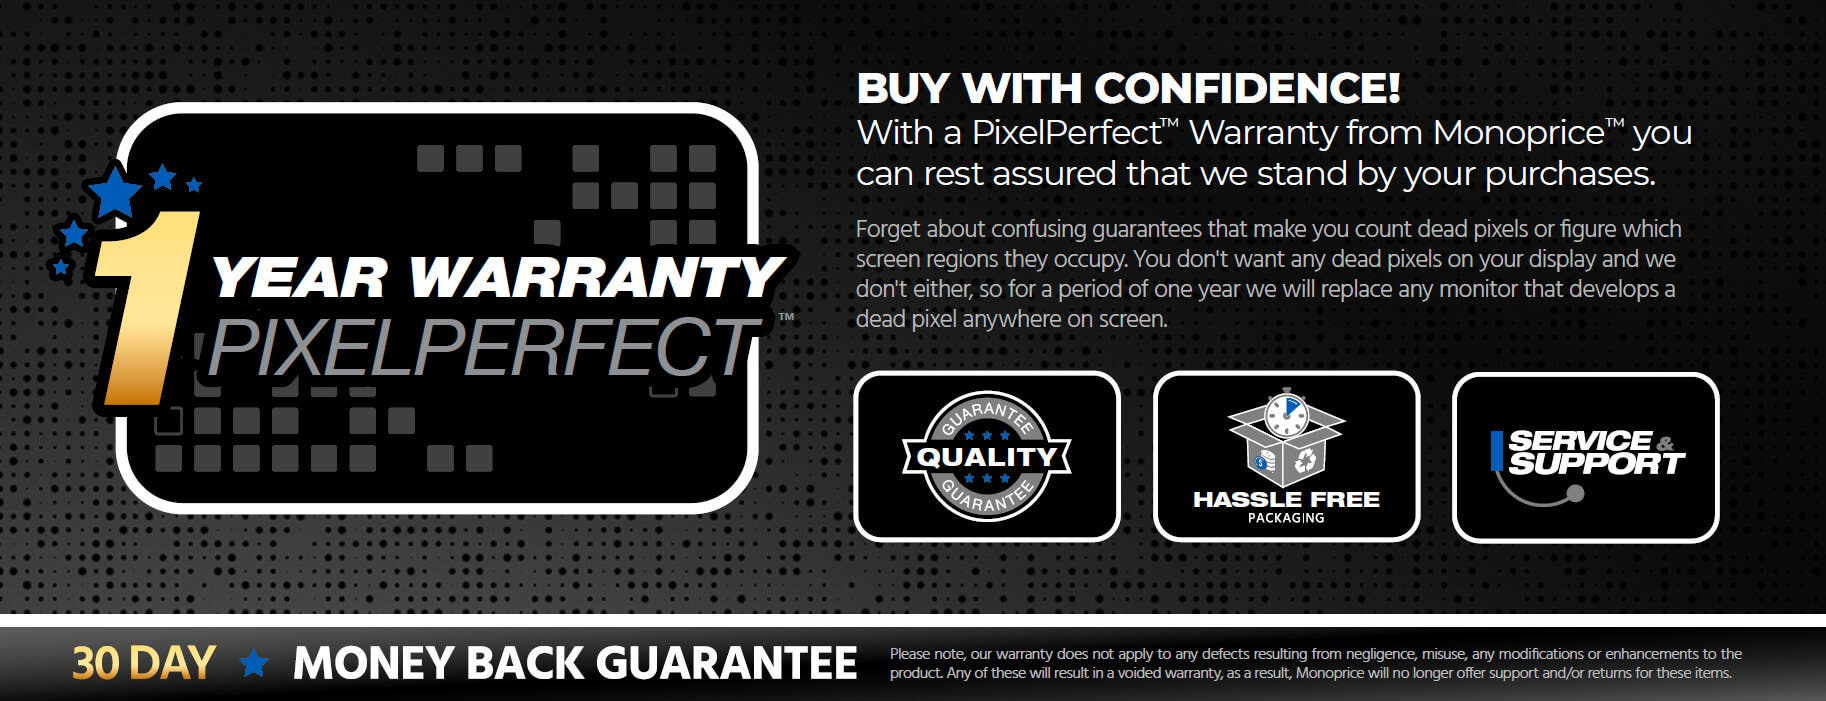 PixelPerfect Warranty